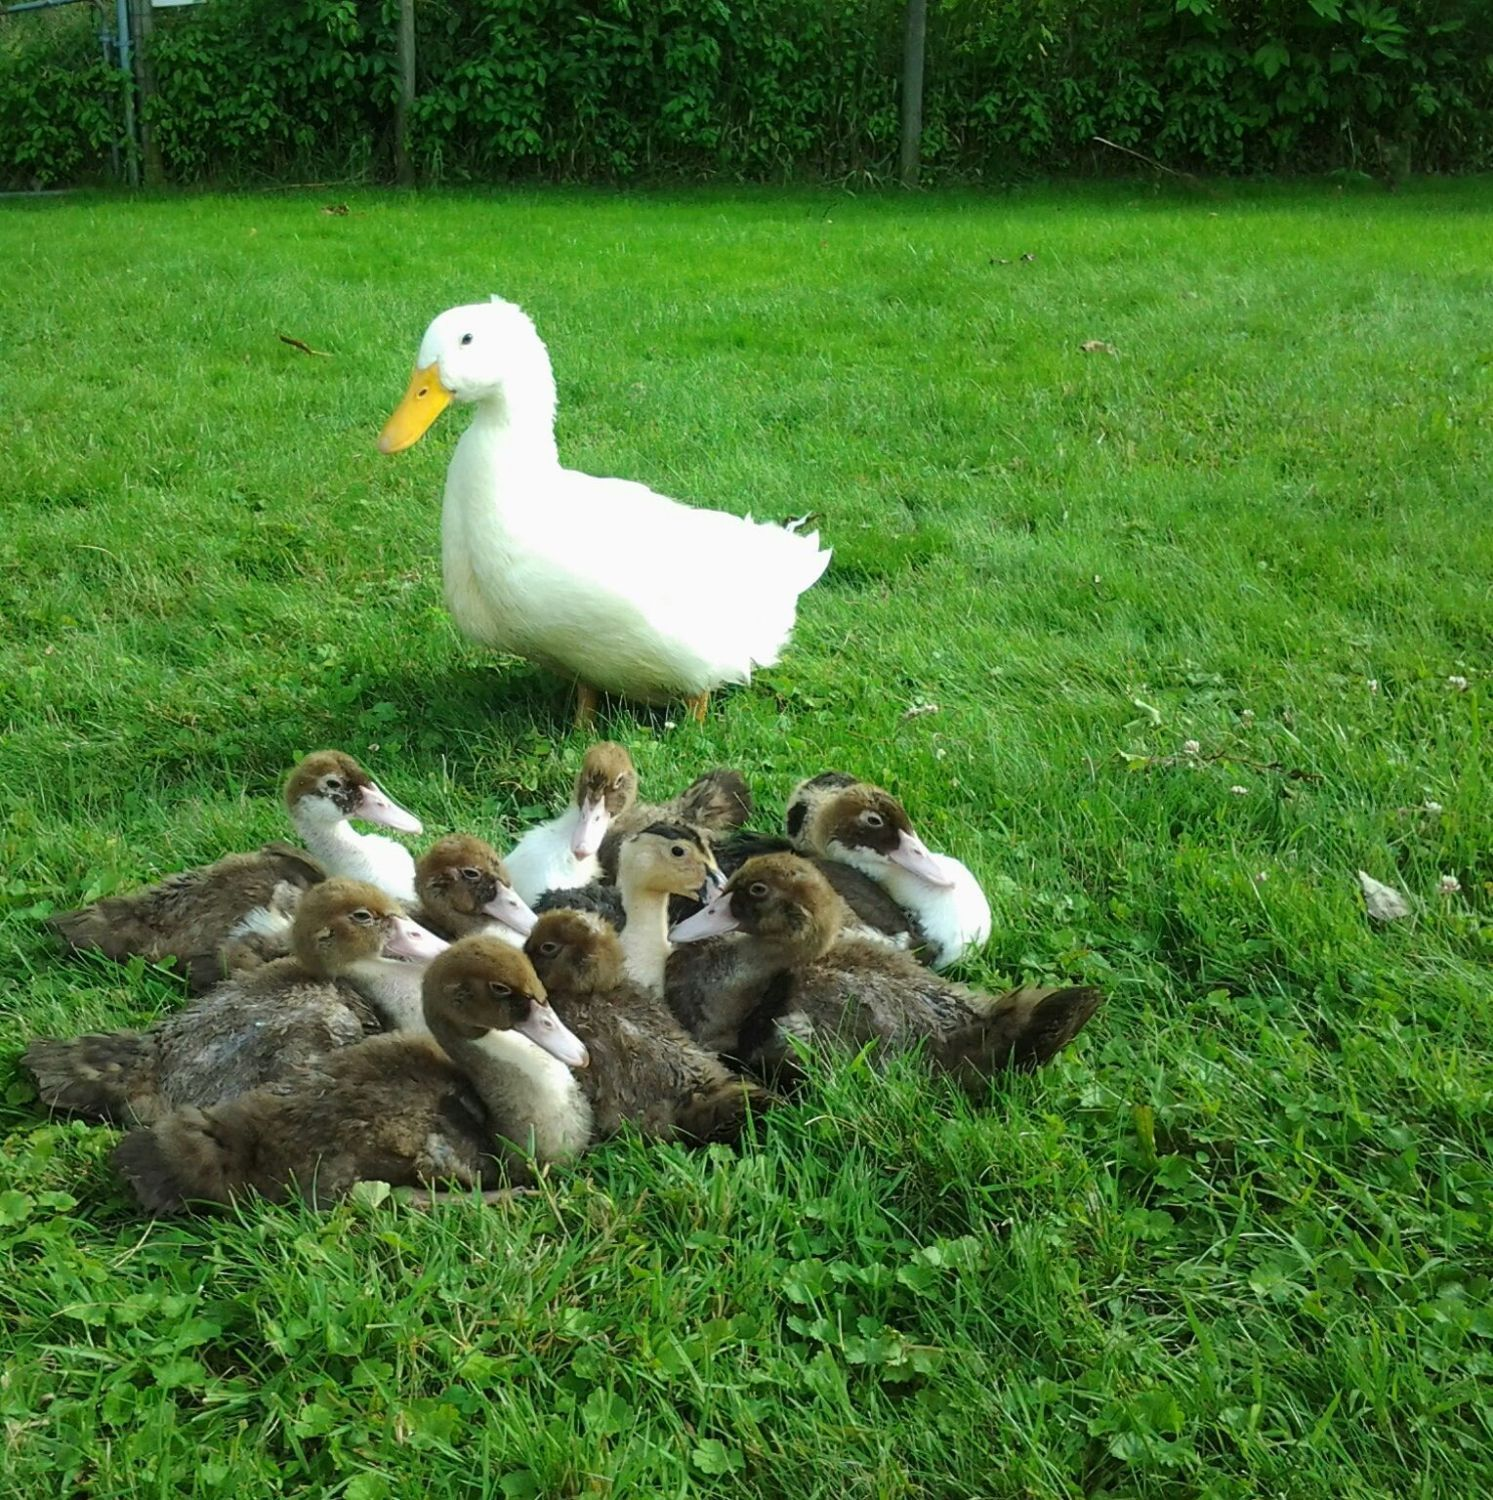 This is Frosty with 10 other ducklings. 8 of them are Muscovies and 2 of them are Magpies. Unfortunately 3 of them have died and we are left with 2 Muscovy Drakes and 3 Muscovy Hens, and the pair of Magpies.